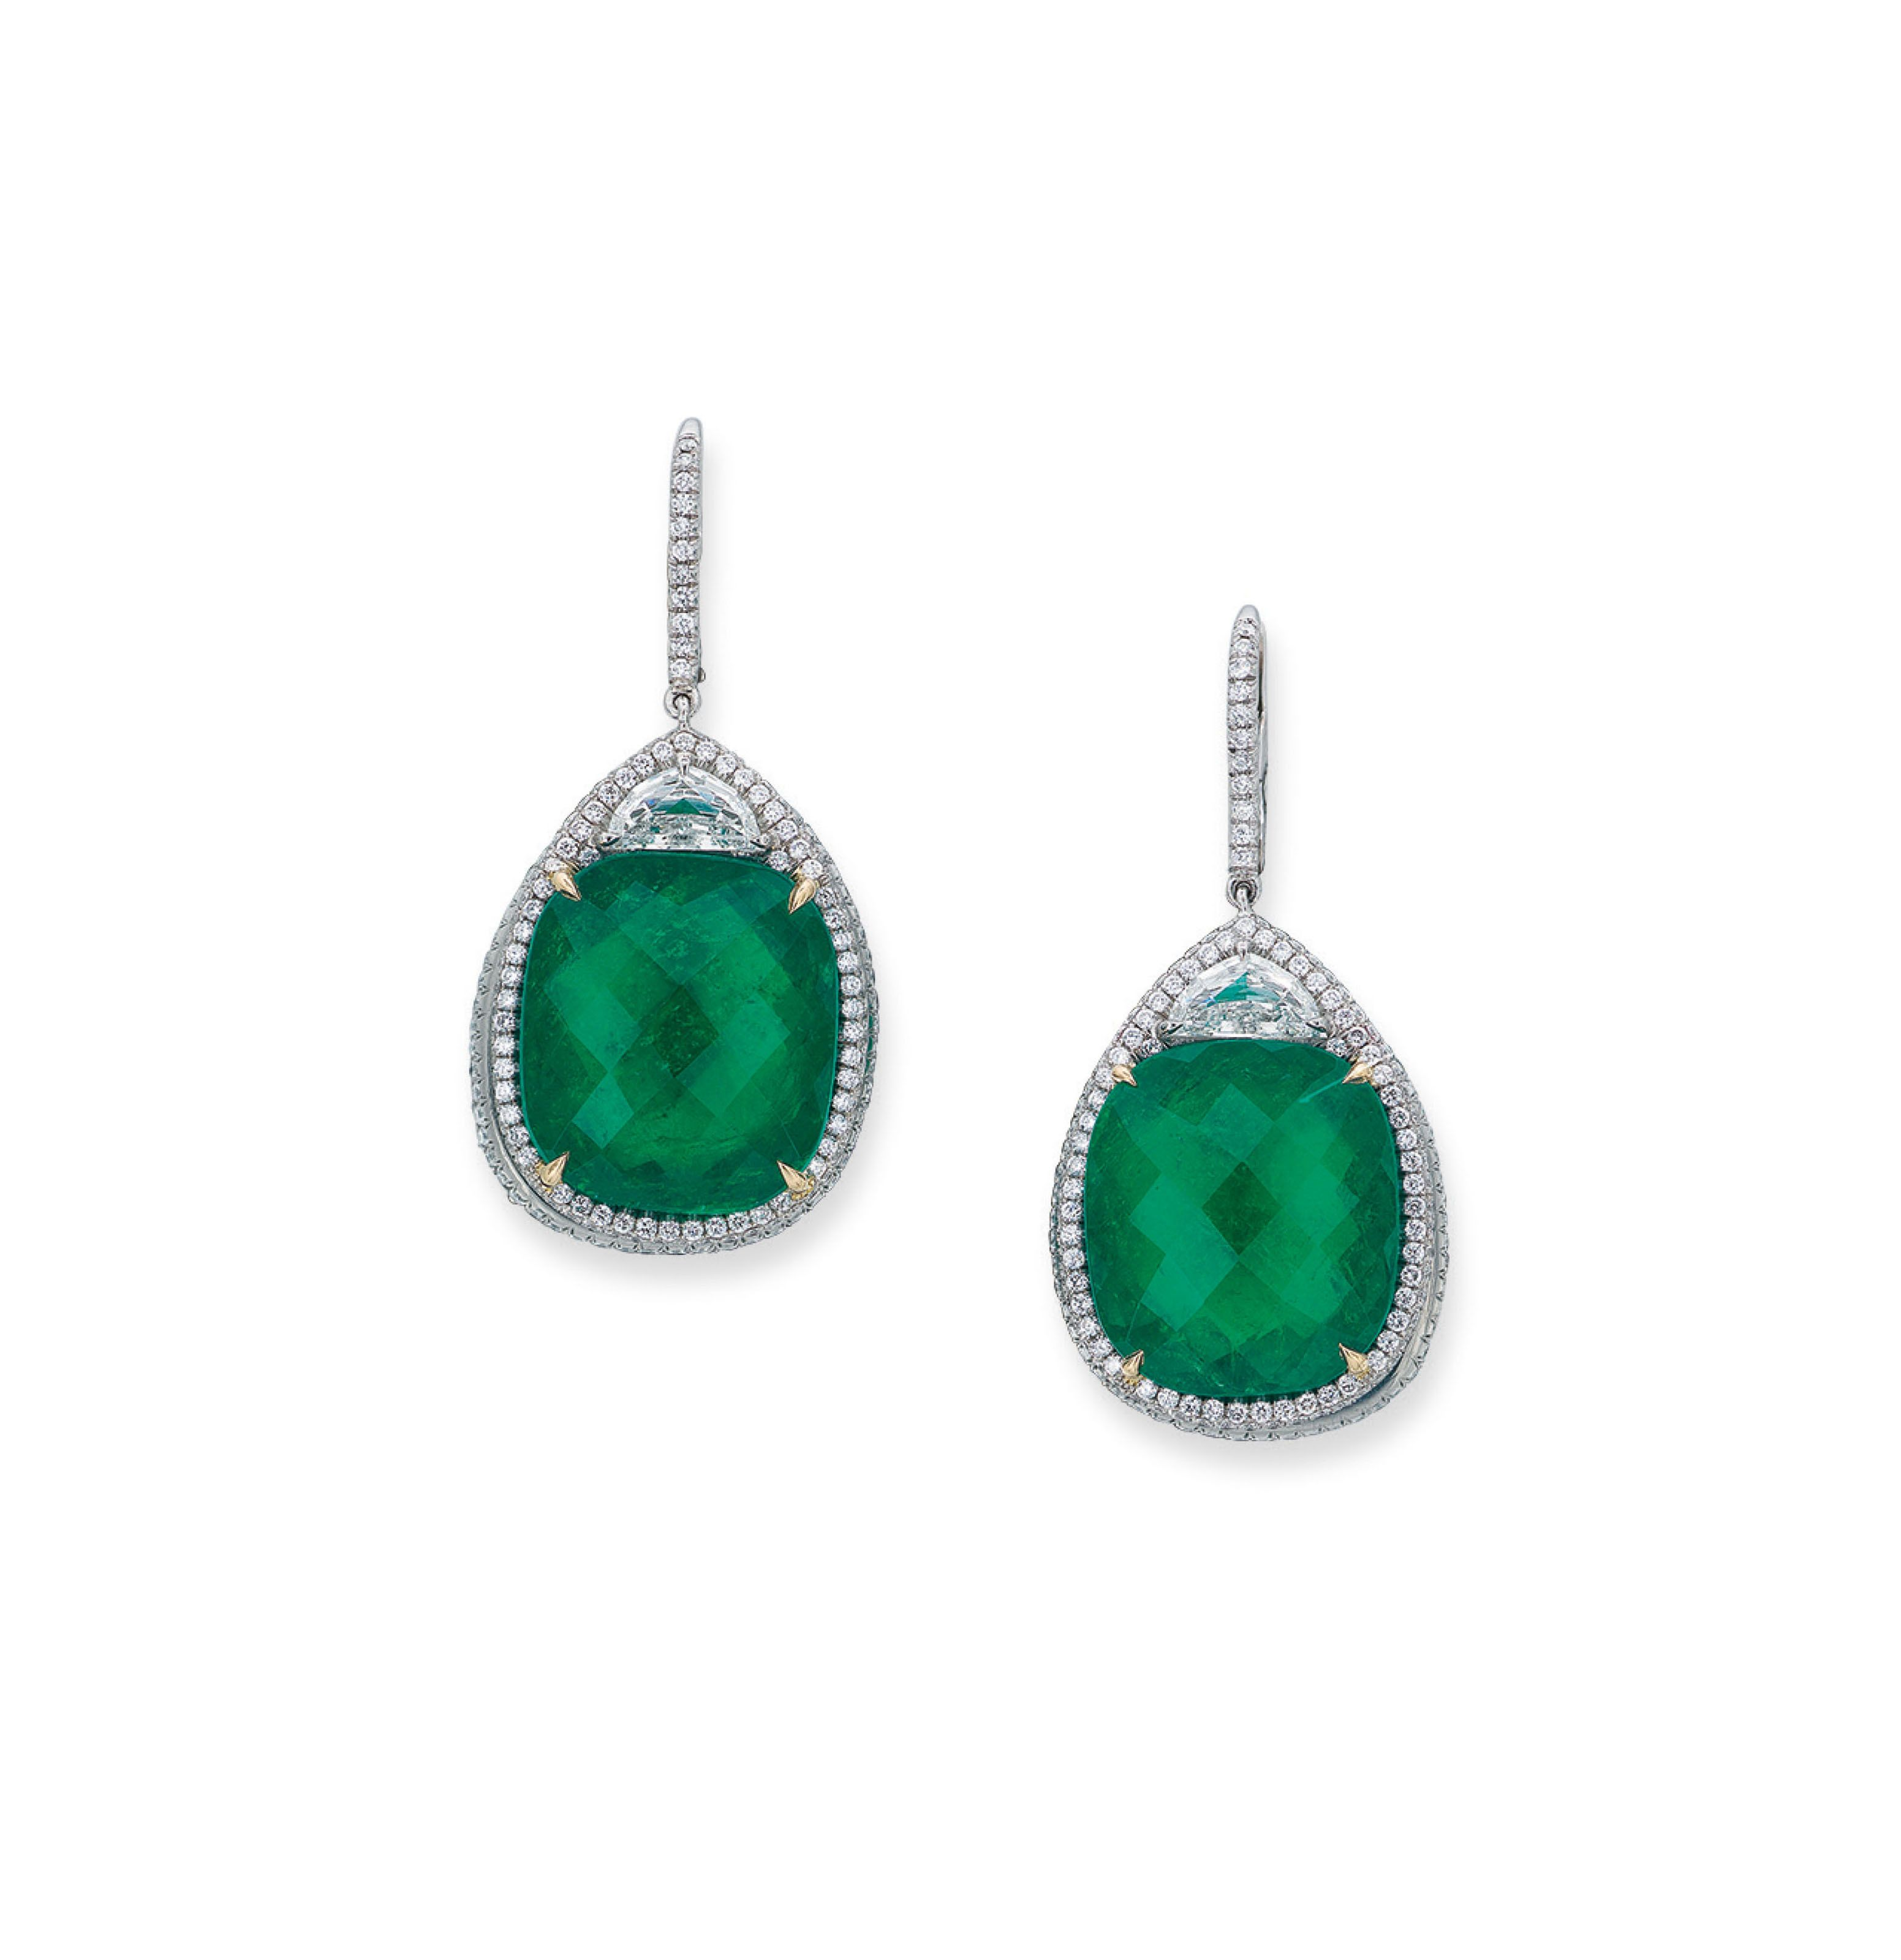 A pair of emerald and diamond ear pendants each dropshaped pendant